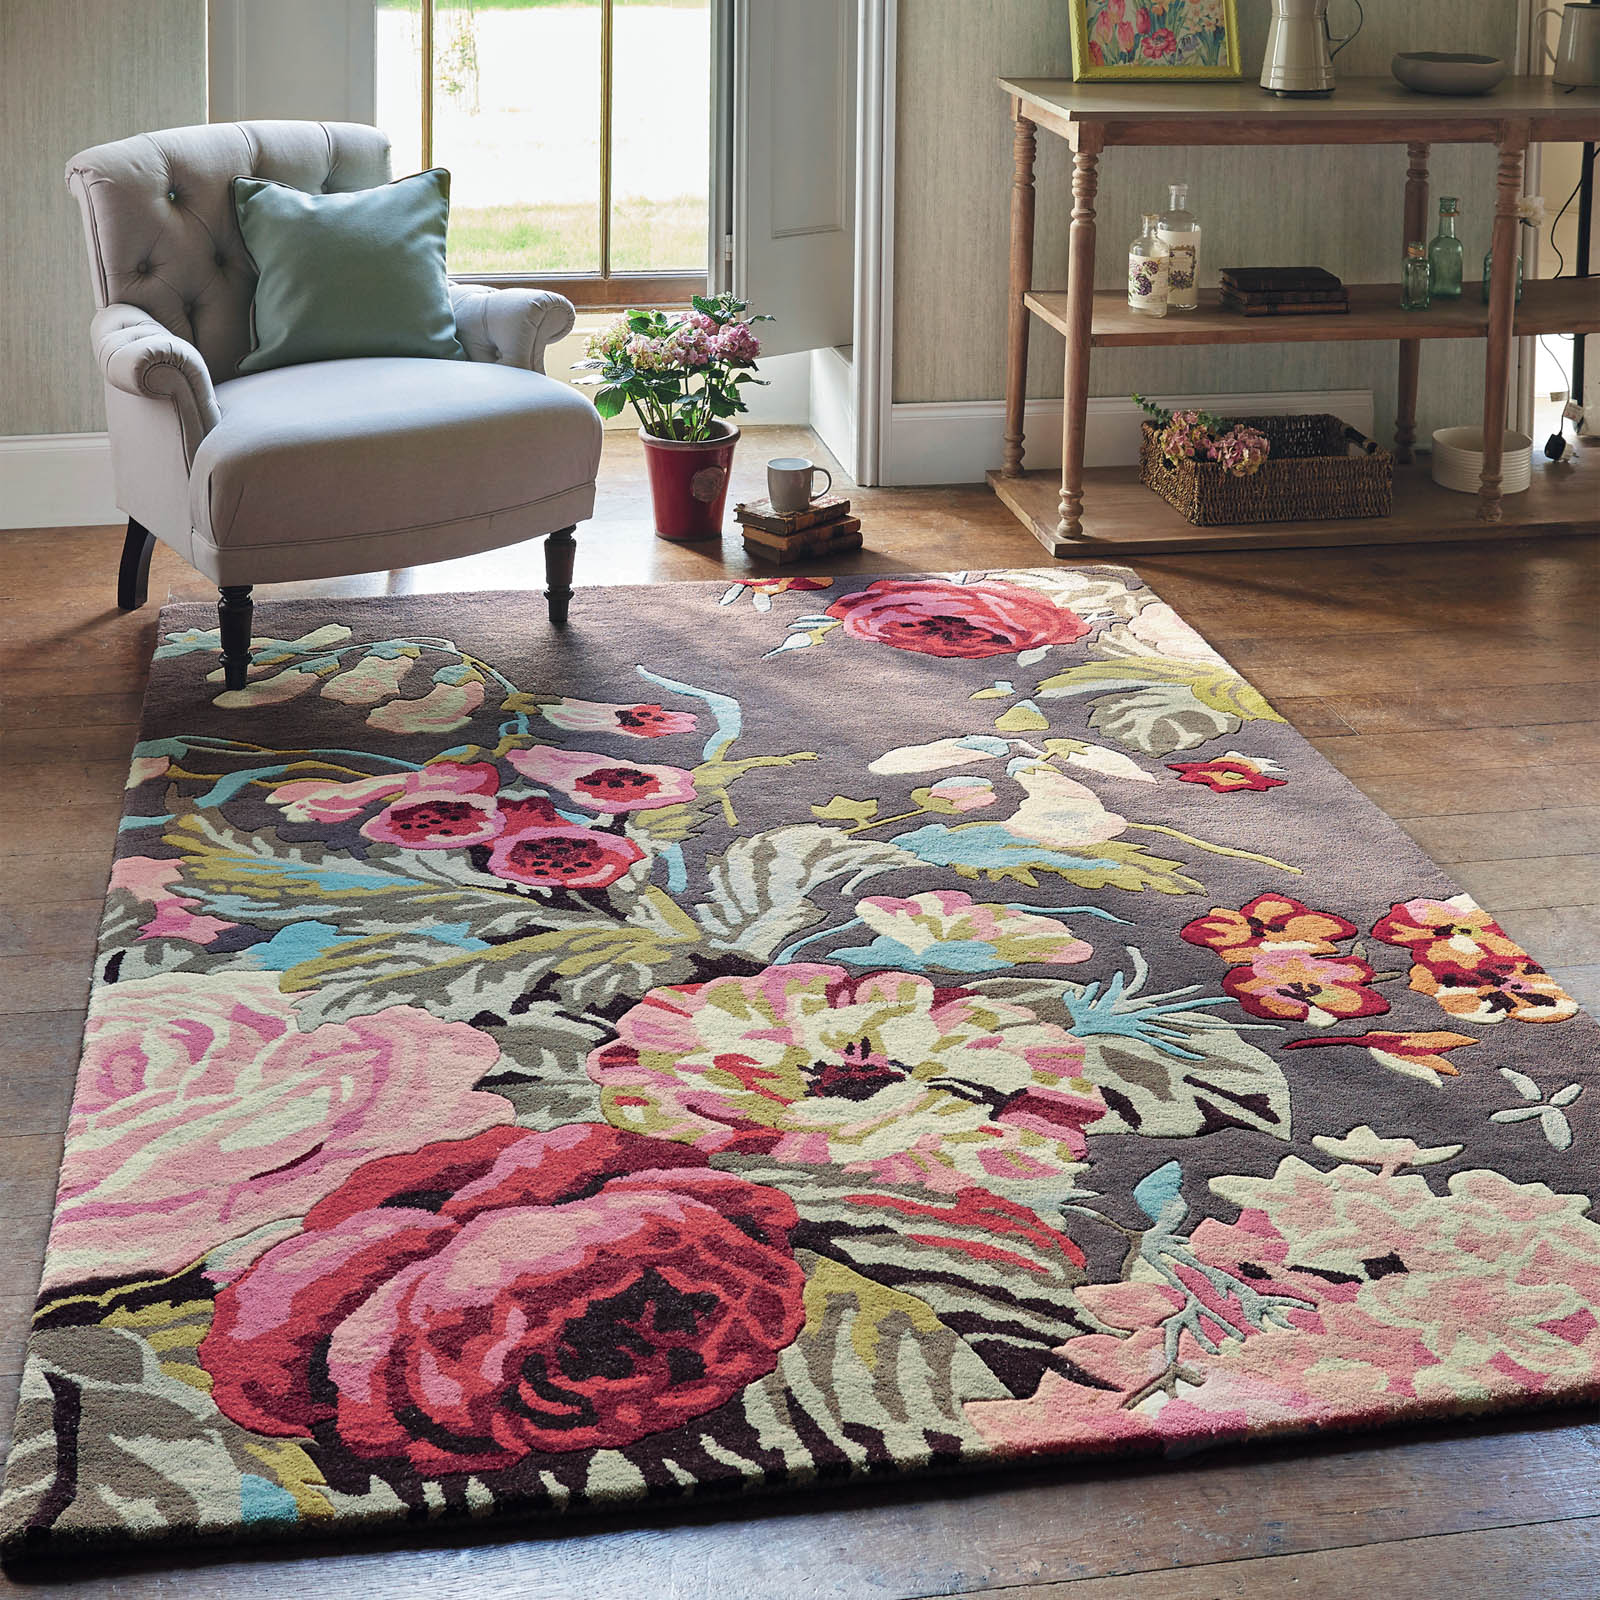 Shop Online With Free Delivery At The Rug